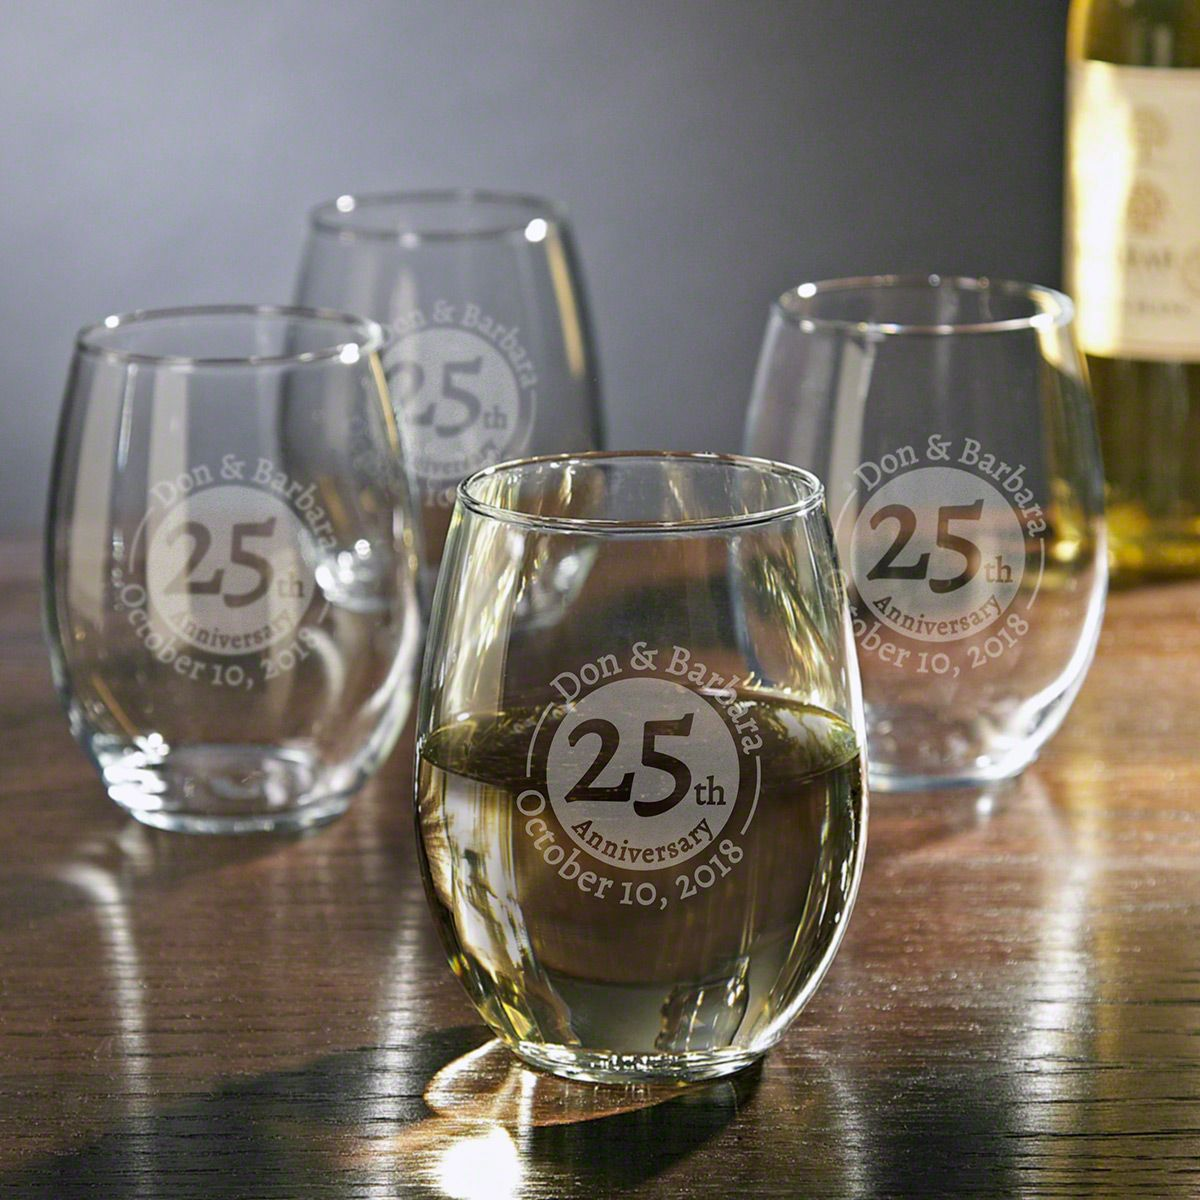 Landmark Anniversary Etched Glass Stemless Wine Glasses